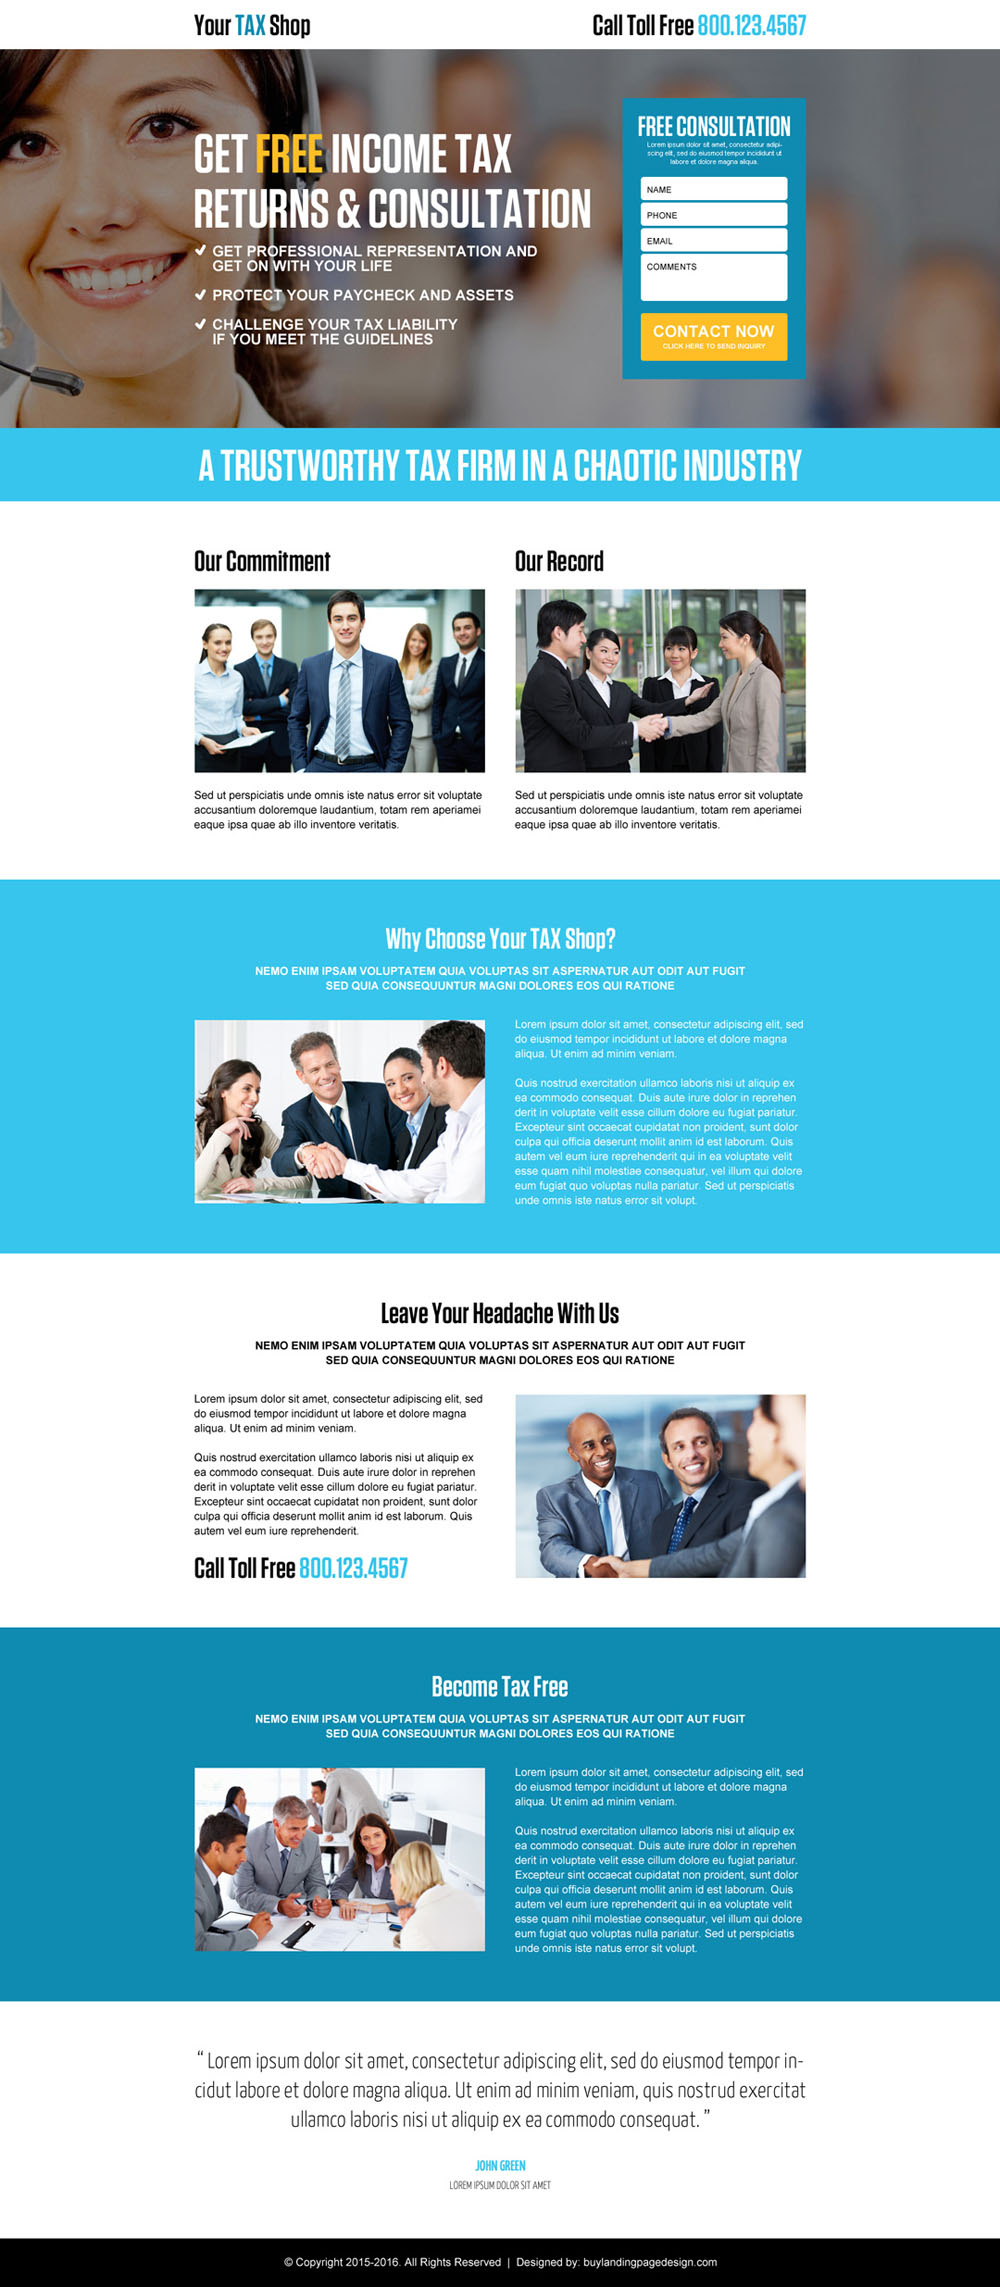 income-tax-return-free-consultation-lead-generation-landing-page-design-001